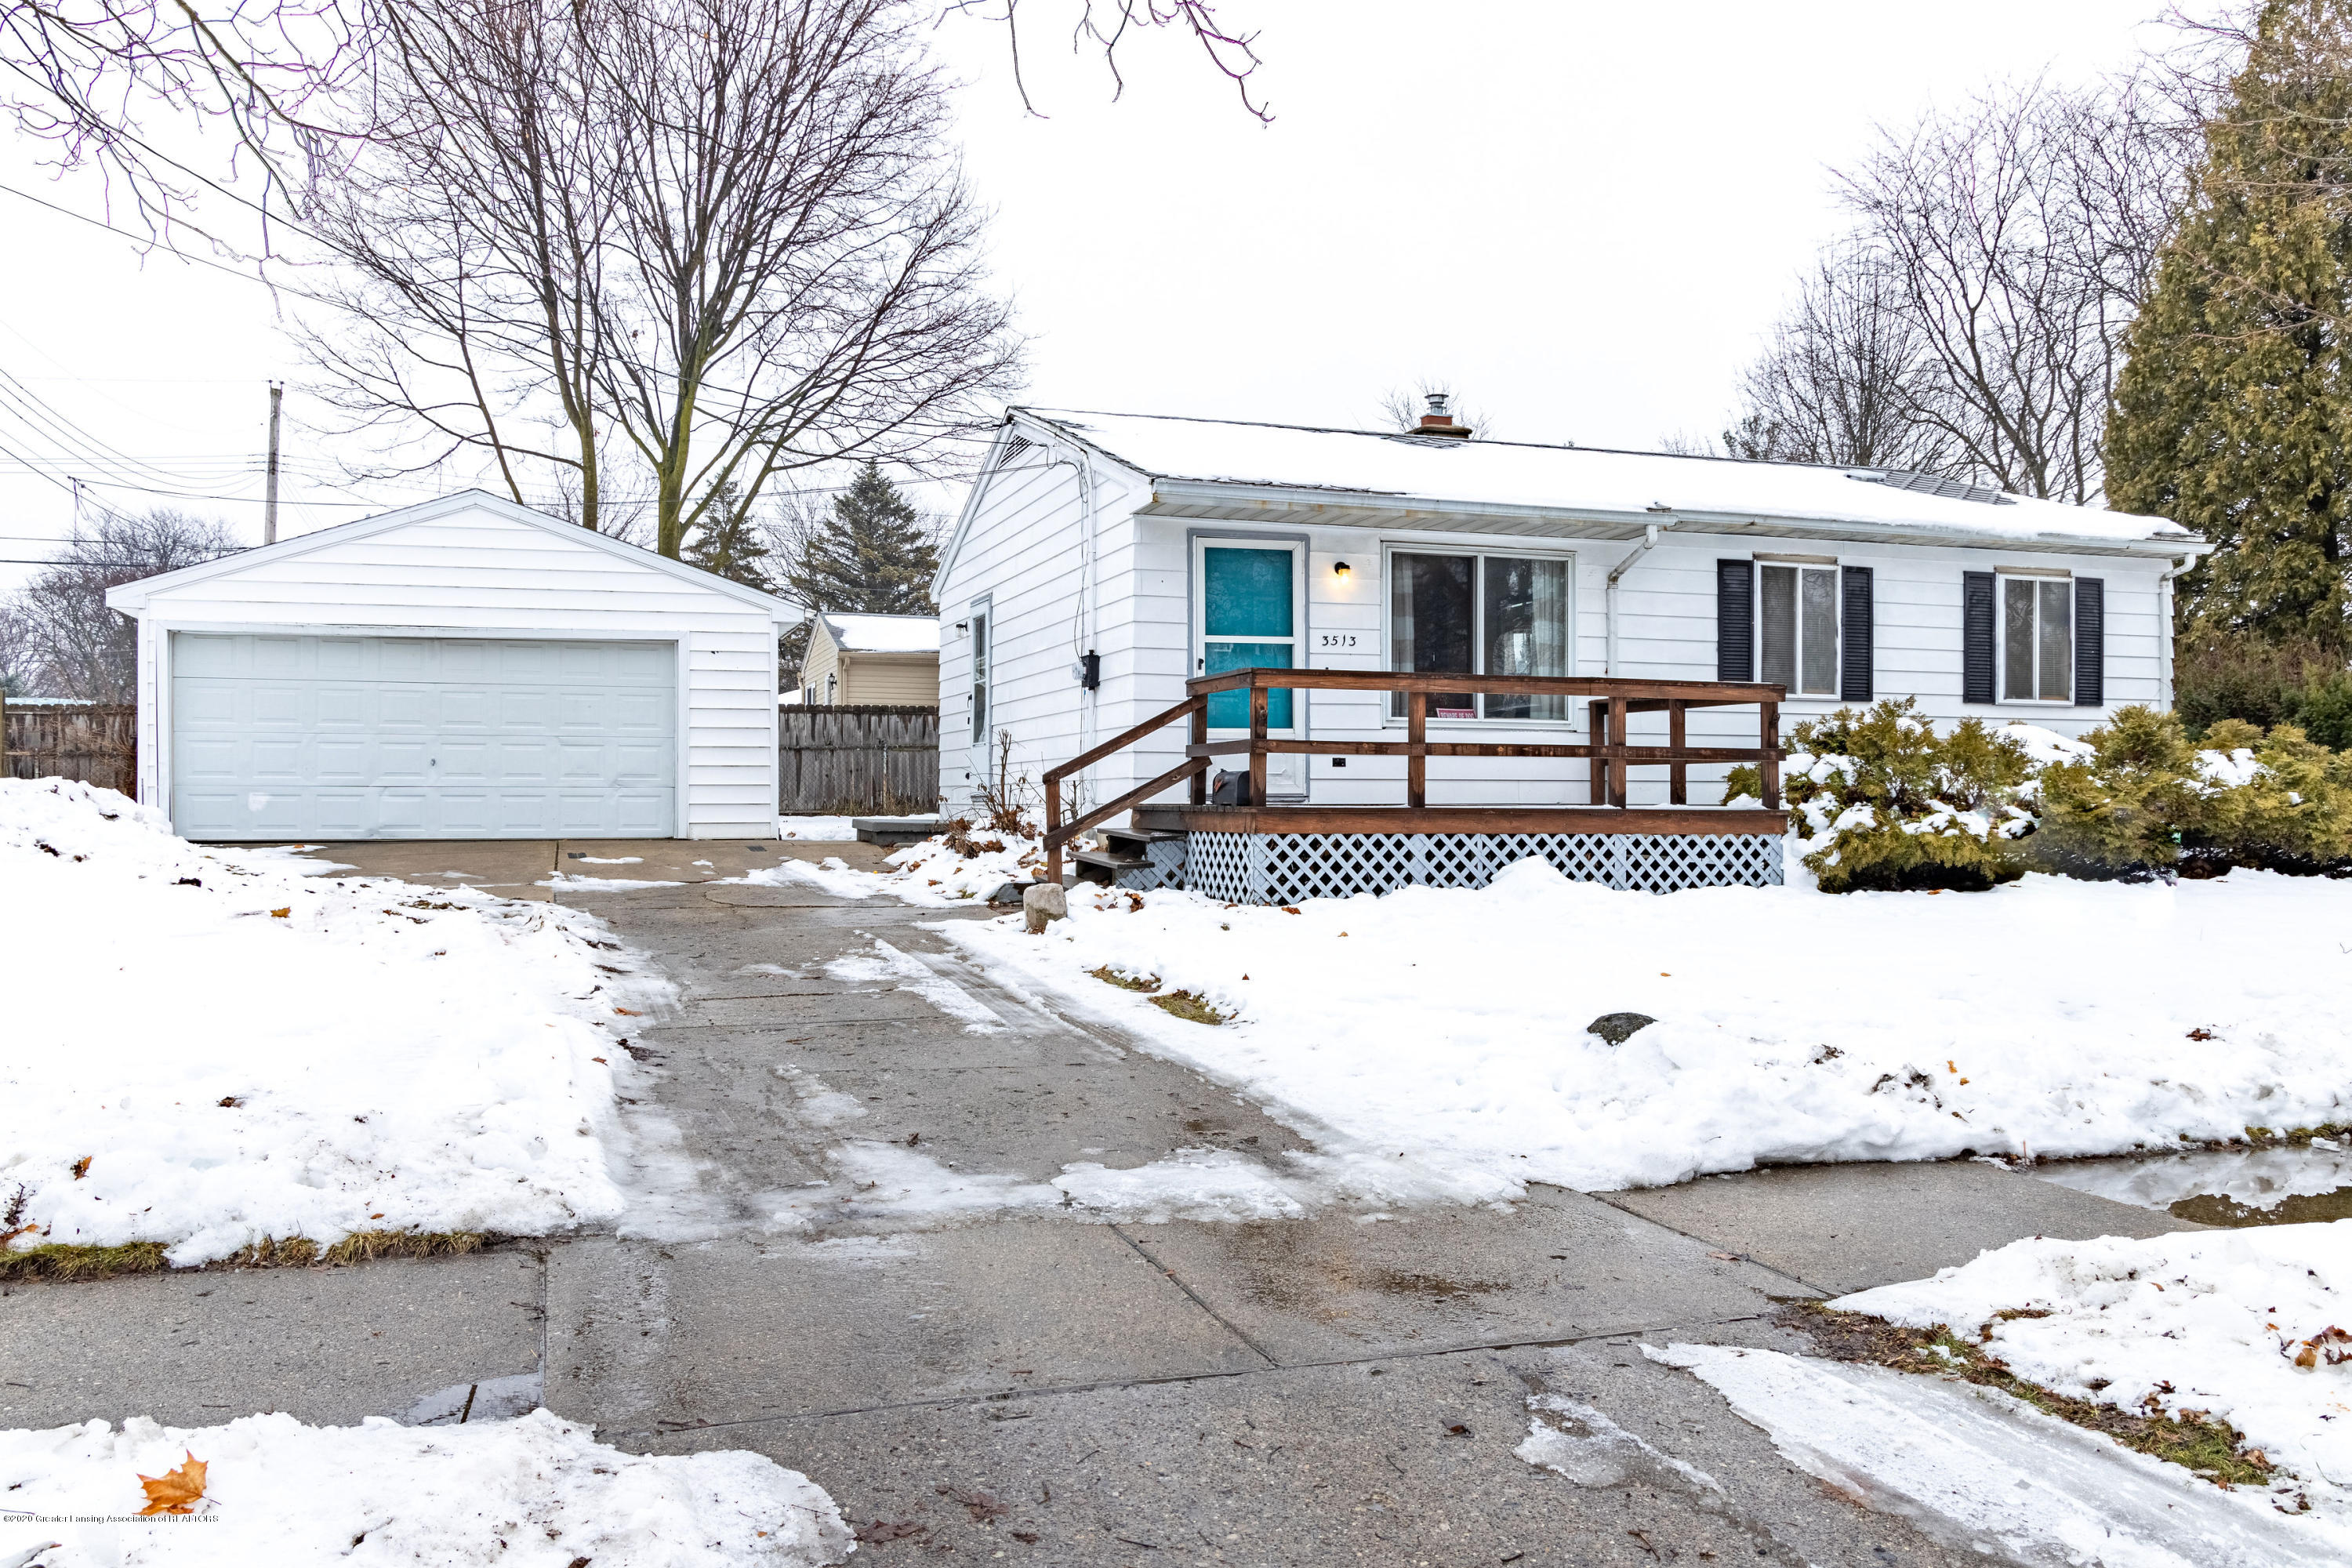 3513 S Deerfield Ave - frot elevation new - 1